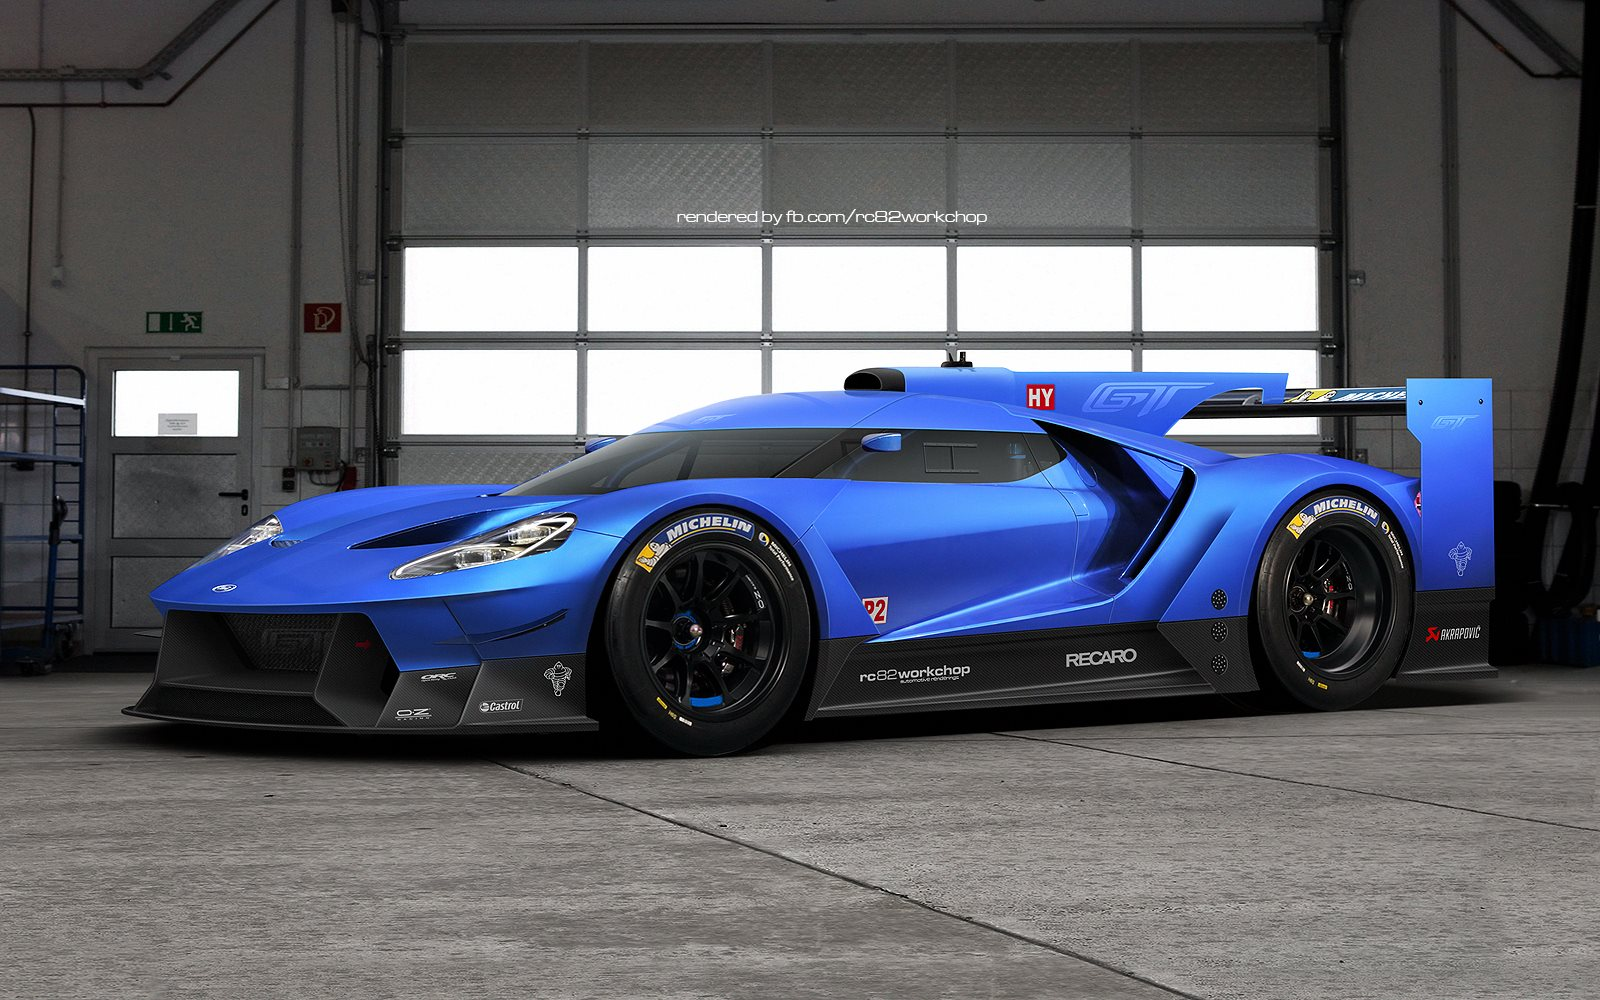 New Ford Gt Racer Could Debut Next Month Gtspirit 05 Kenworth T800 Ac Wiring Diagrams